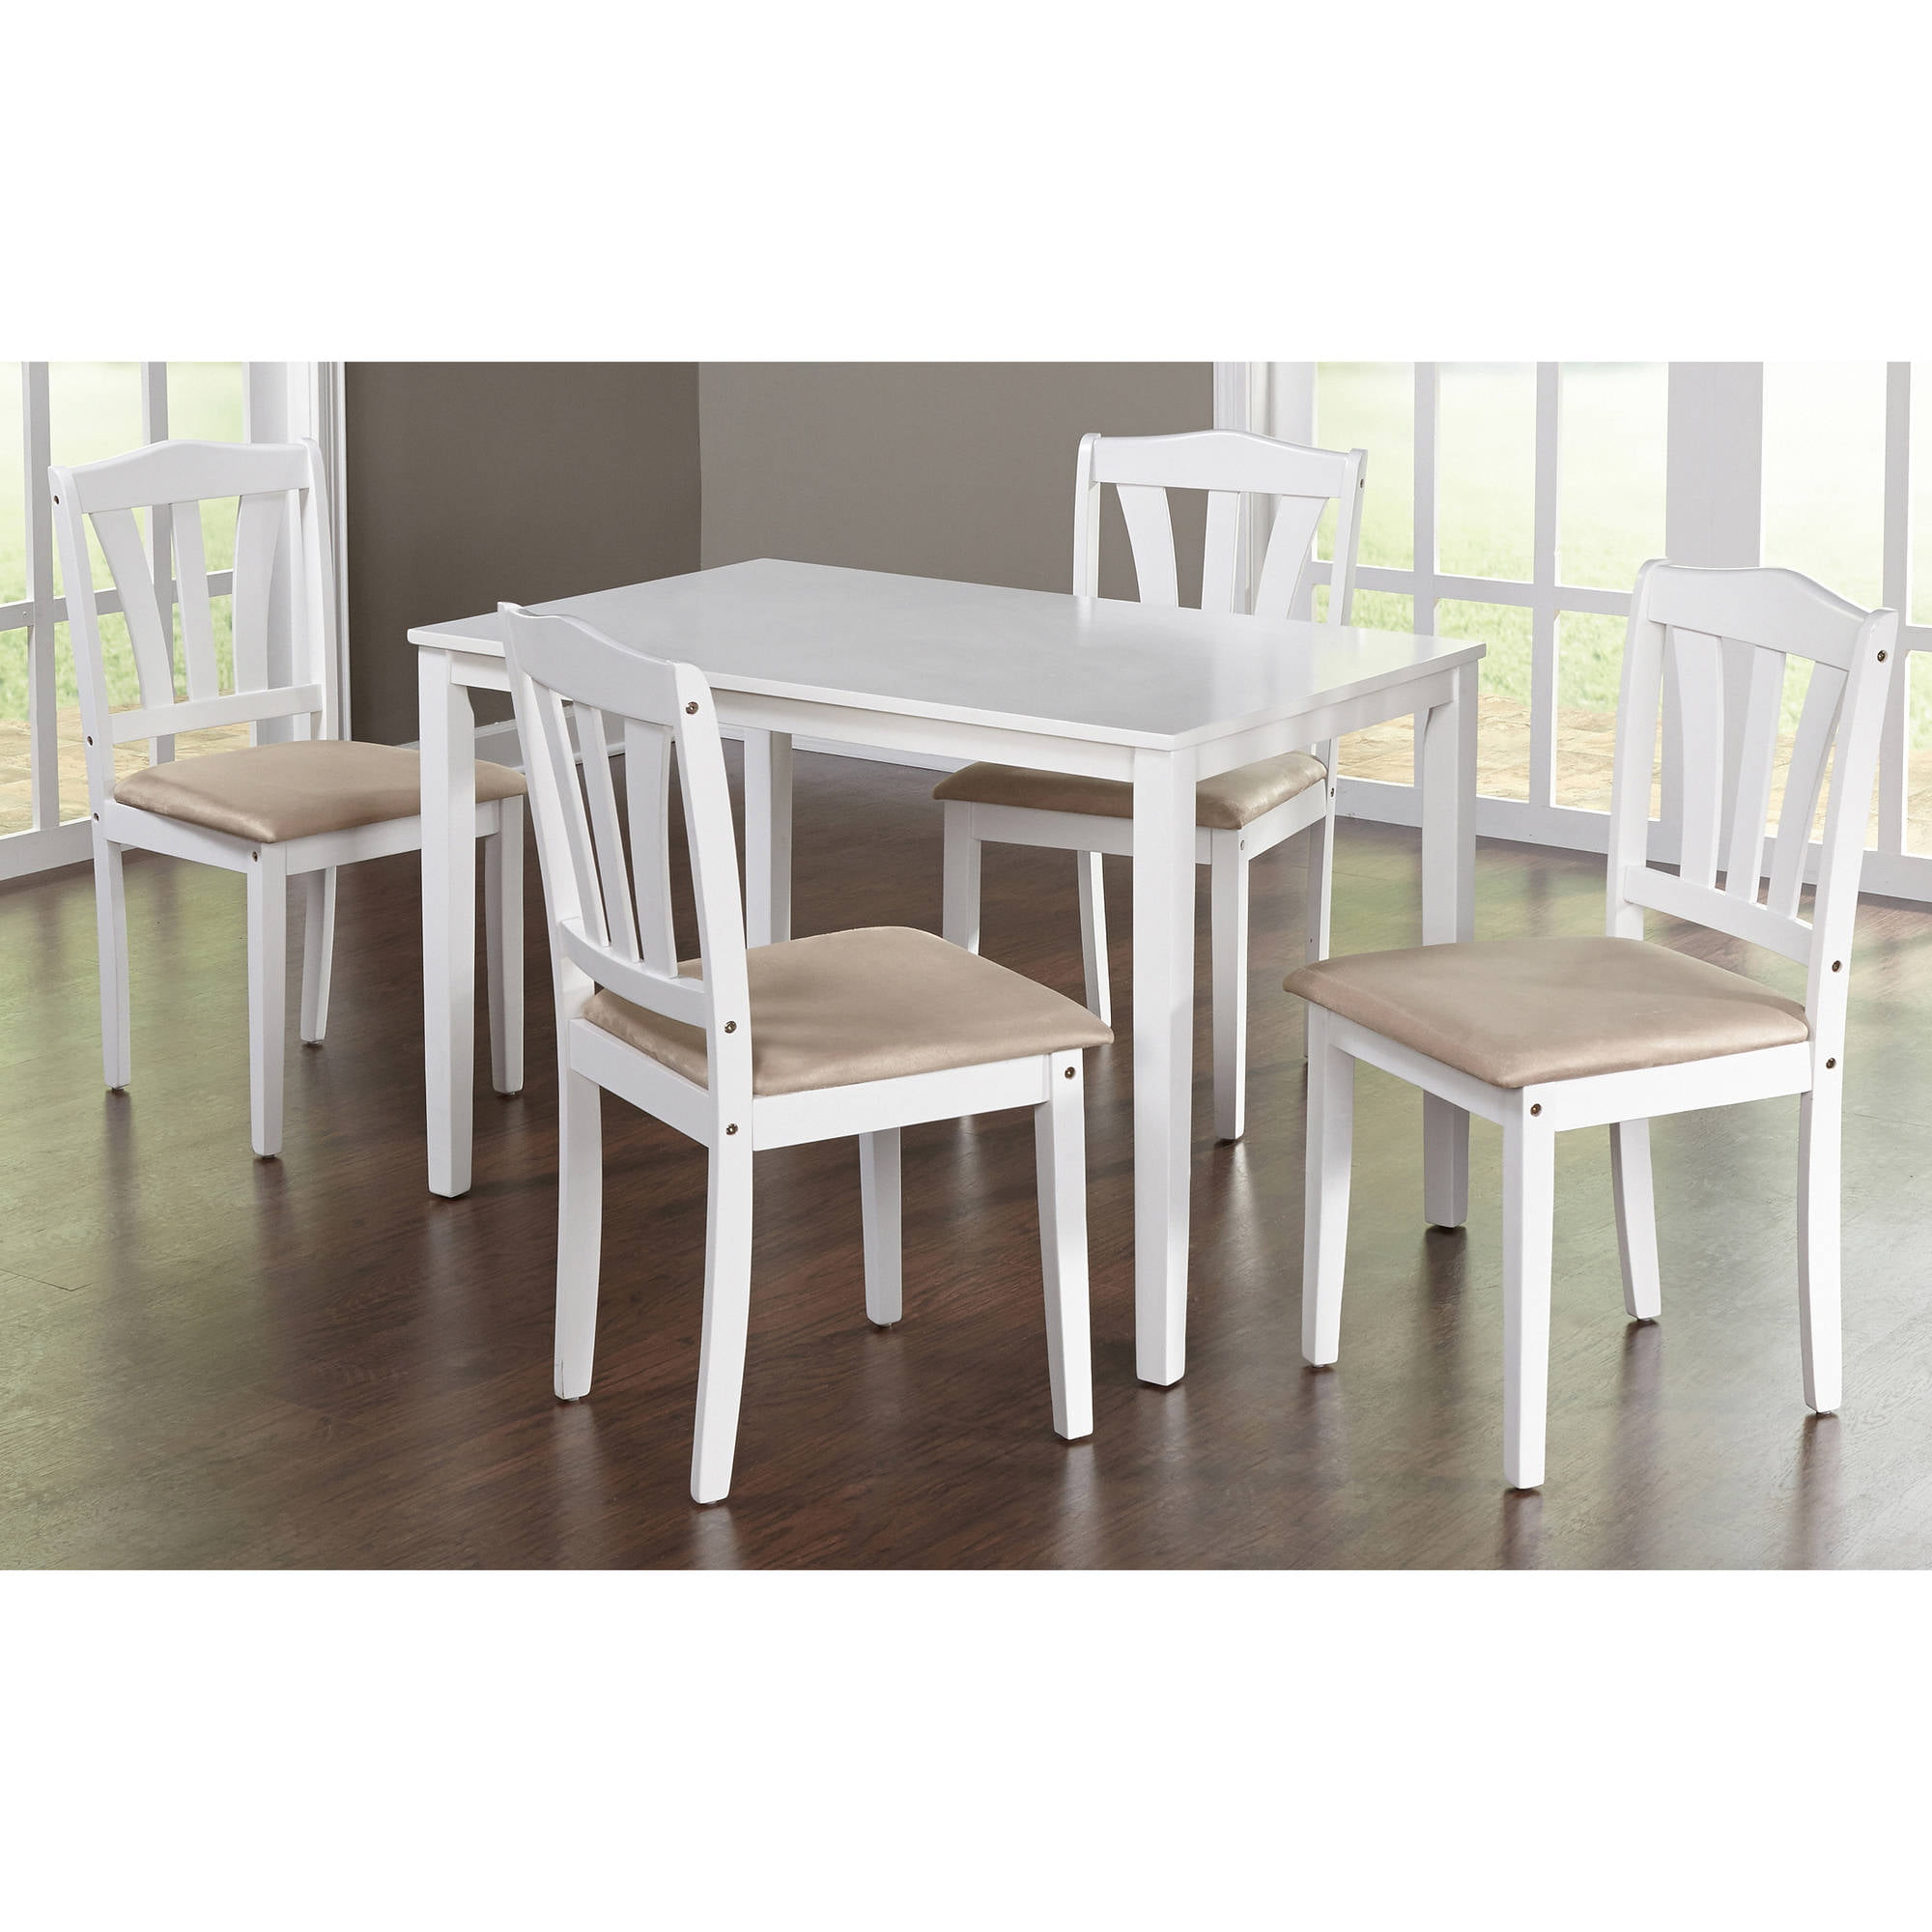 Metropolitan 5 Piece Dining Set, Multiple Colors   Walmart.com